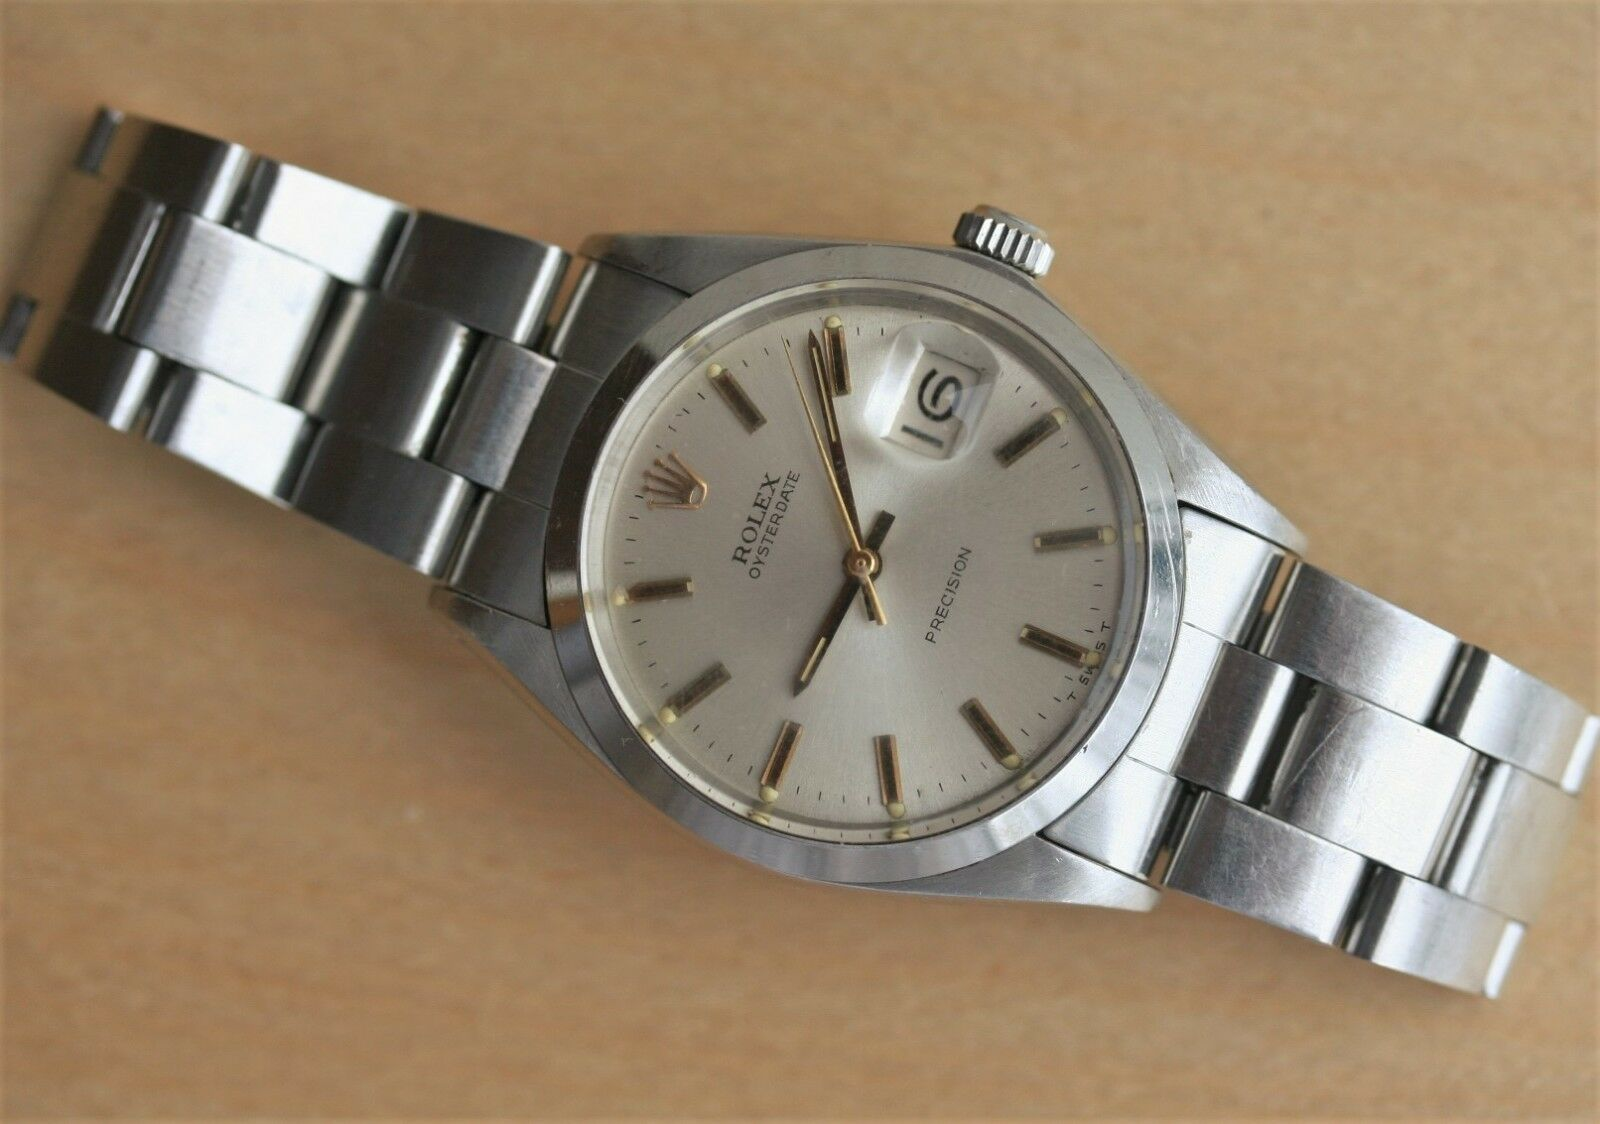 Forsale rolex precision date 6694 from 1969 1225